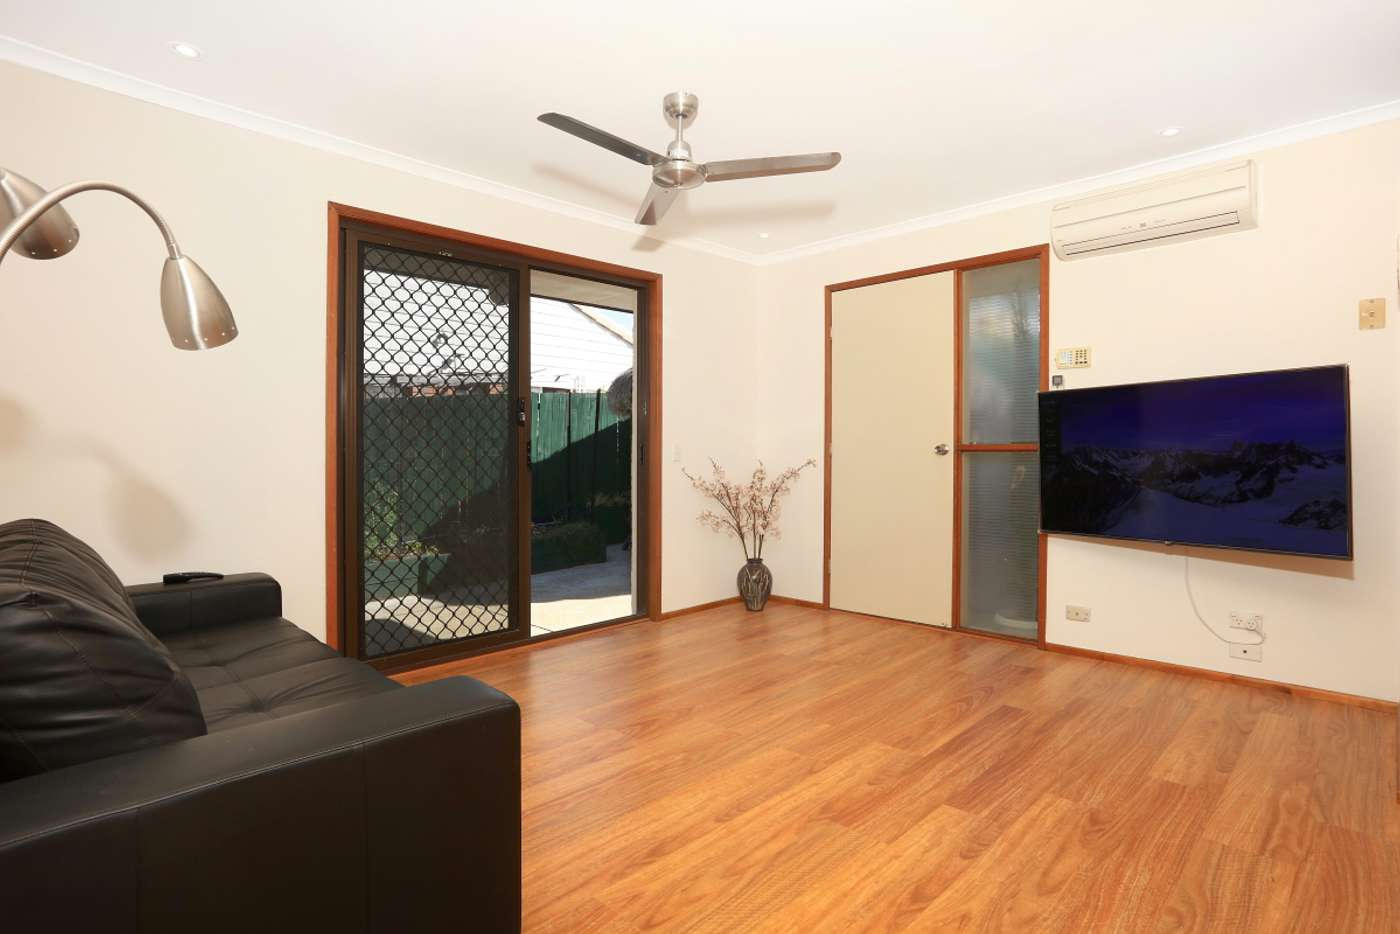 Sixth view of Homely house listing, 2/8 Dorrigo Drive, Worongary QLD 4213